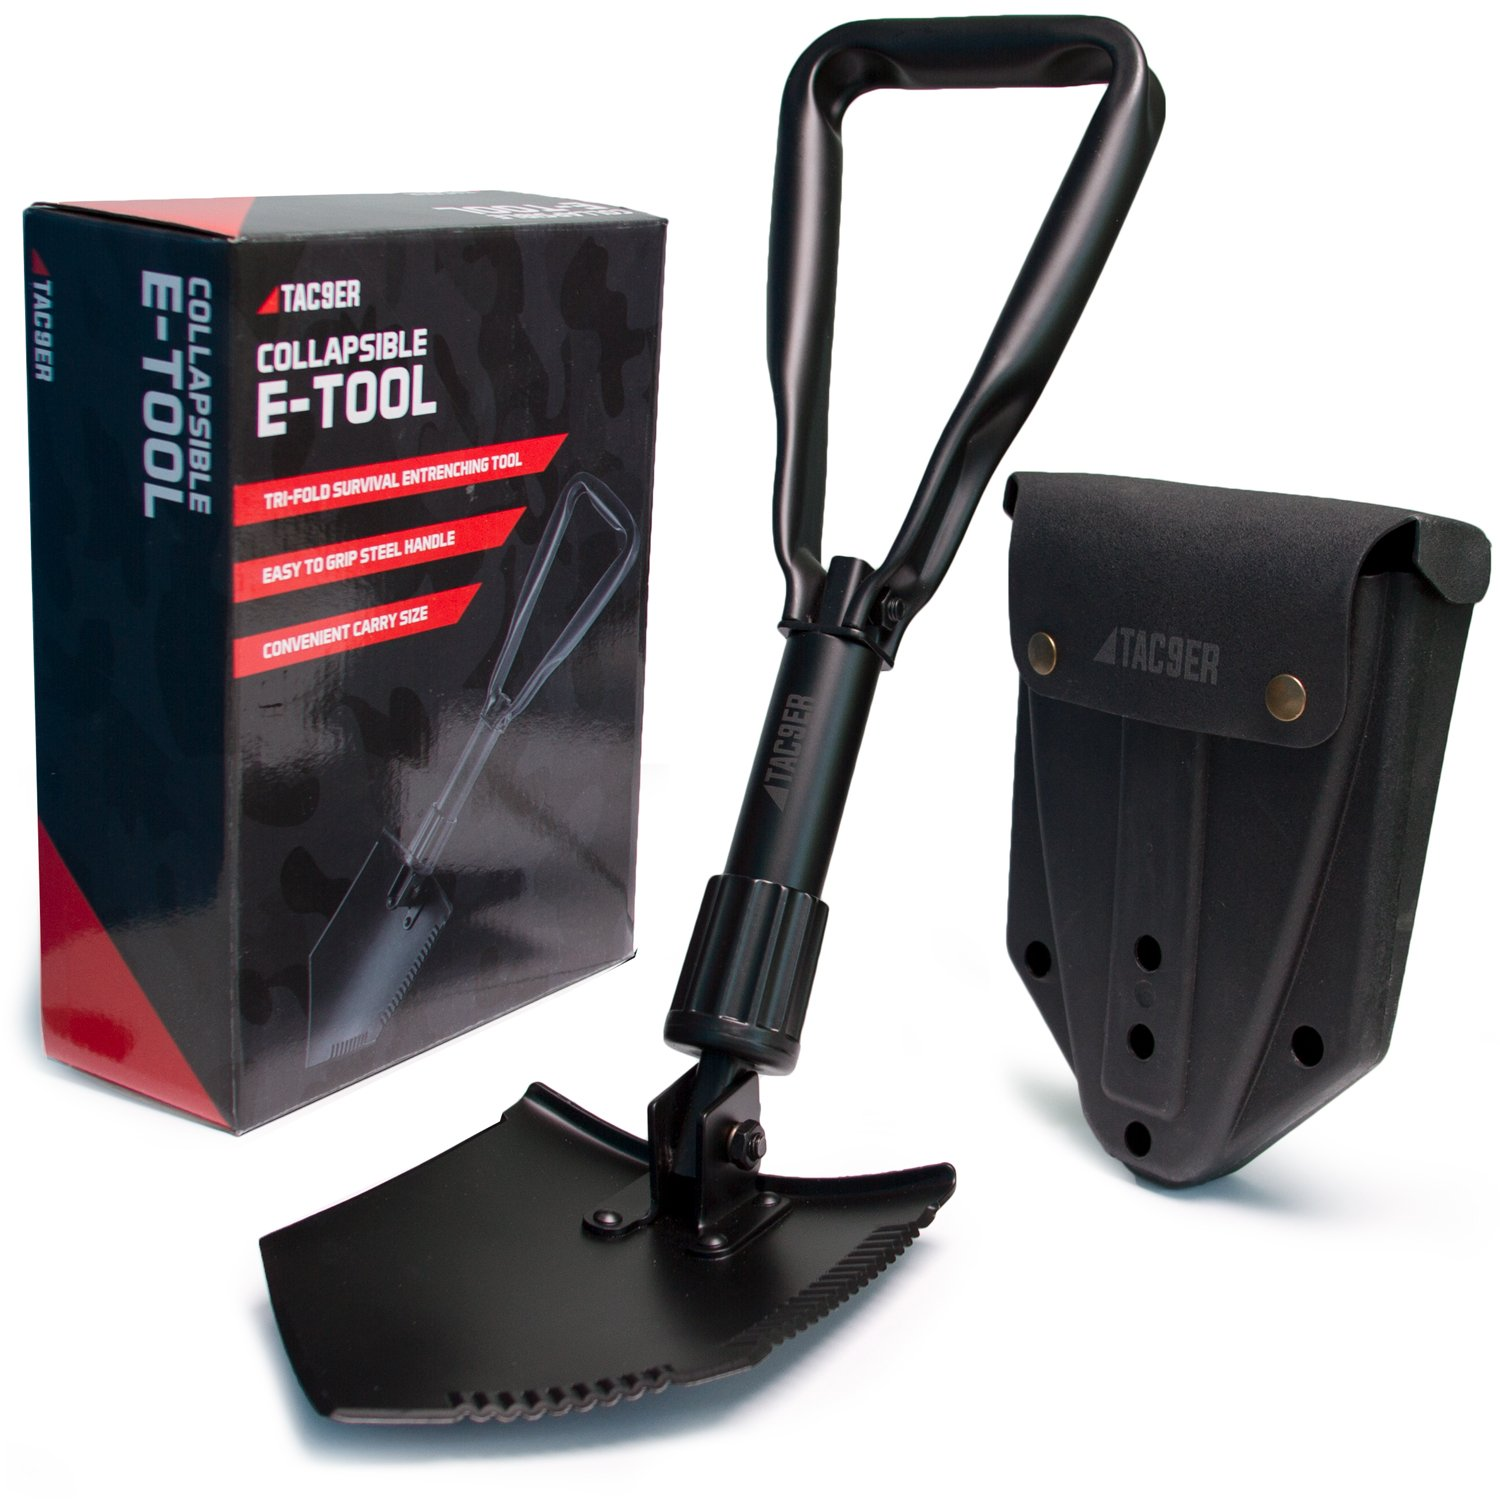 Tac9er Collapsible E-Tool Shovel - Portable, Metal, Folding, Tactical Military Shovel with Serrated Steel Blade and Carrying Case for Camping, Backpacking, Gardening, and Survival